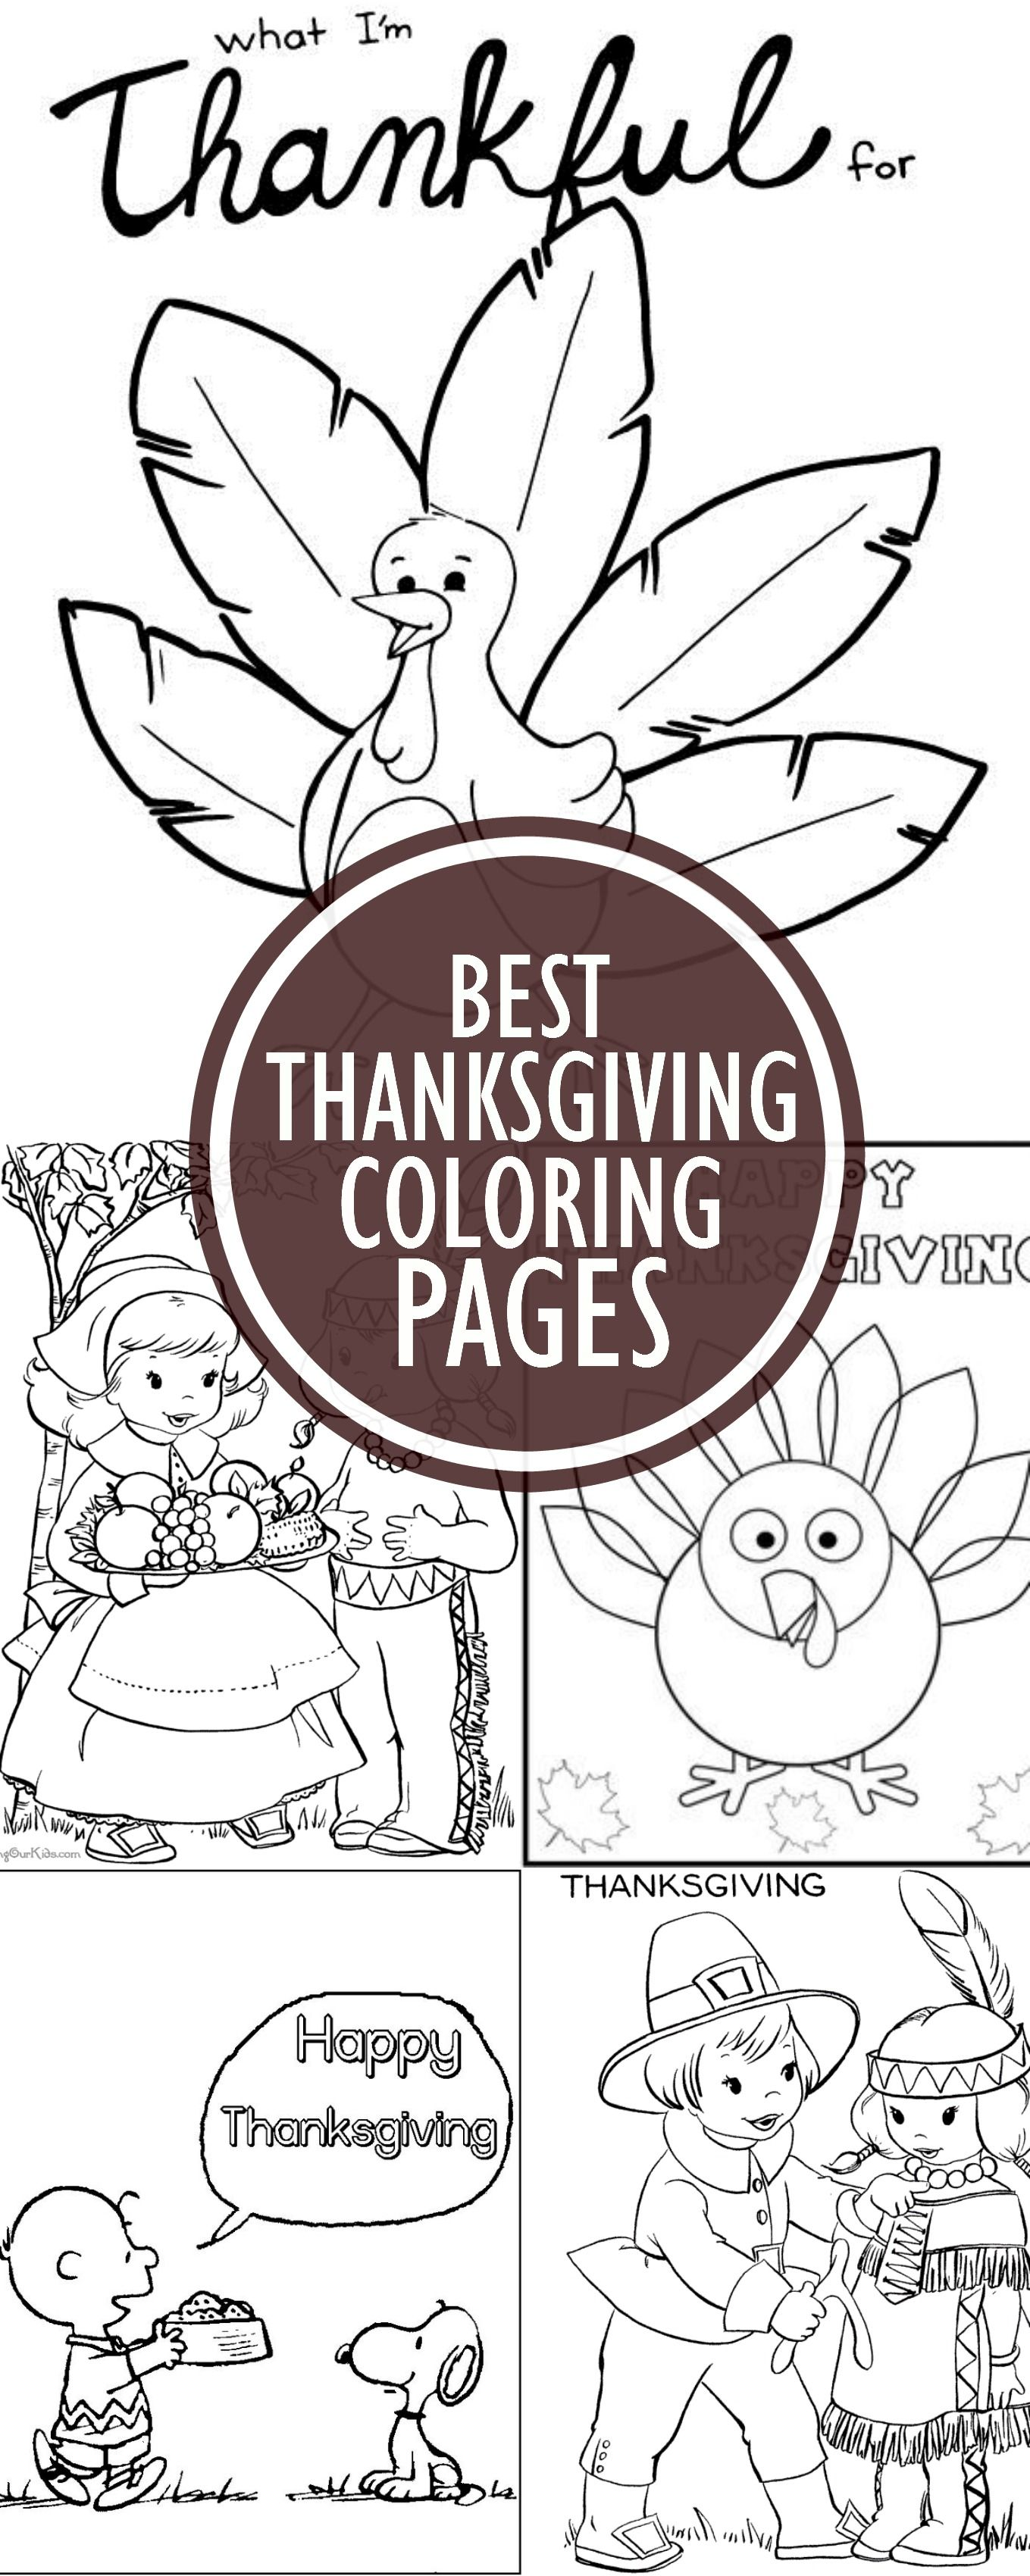 Top 10 Free Printable Disney Thanksgiving Coloring Pages Online ...